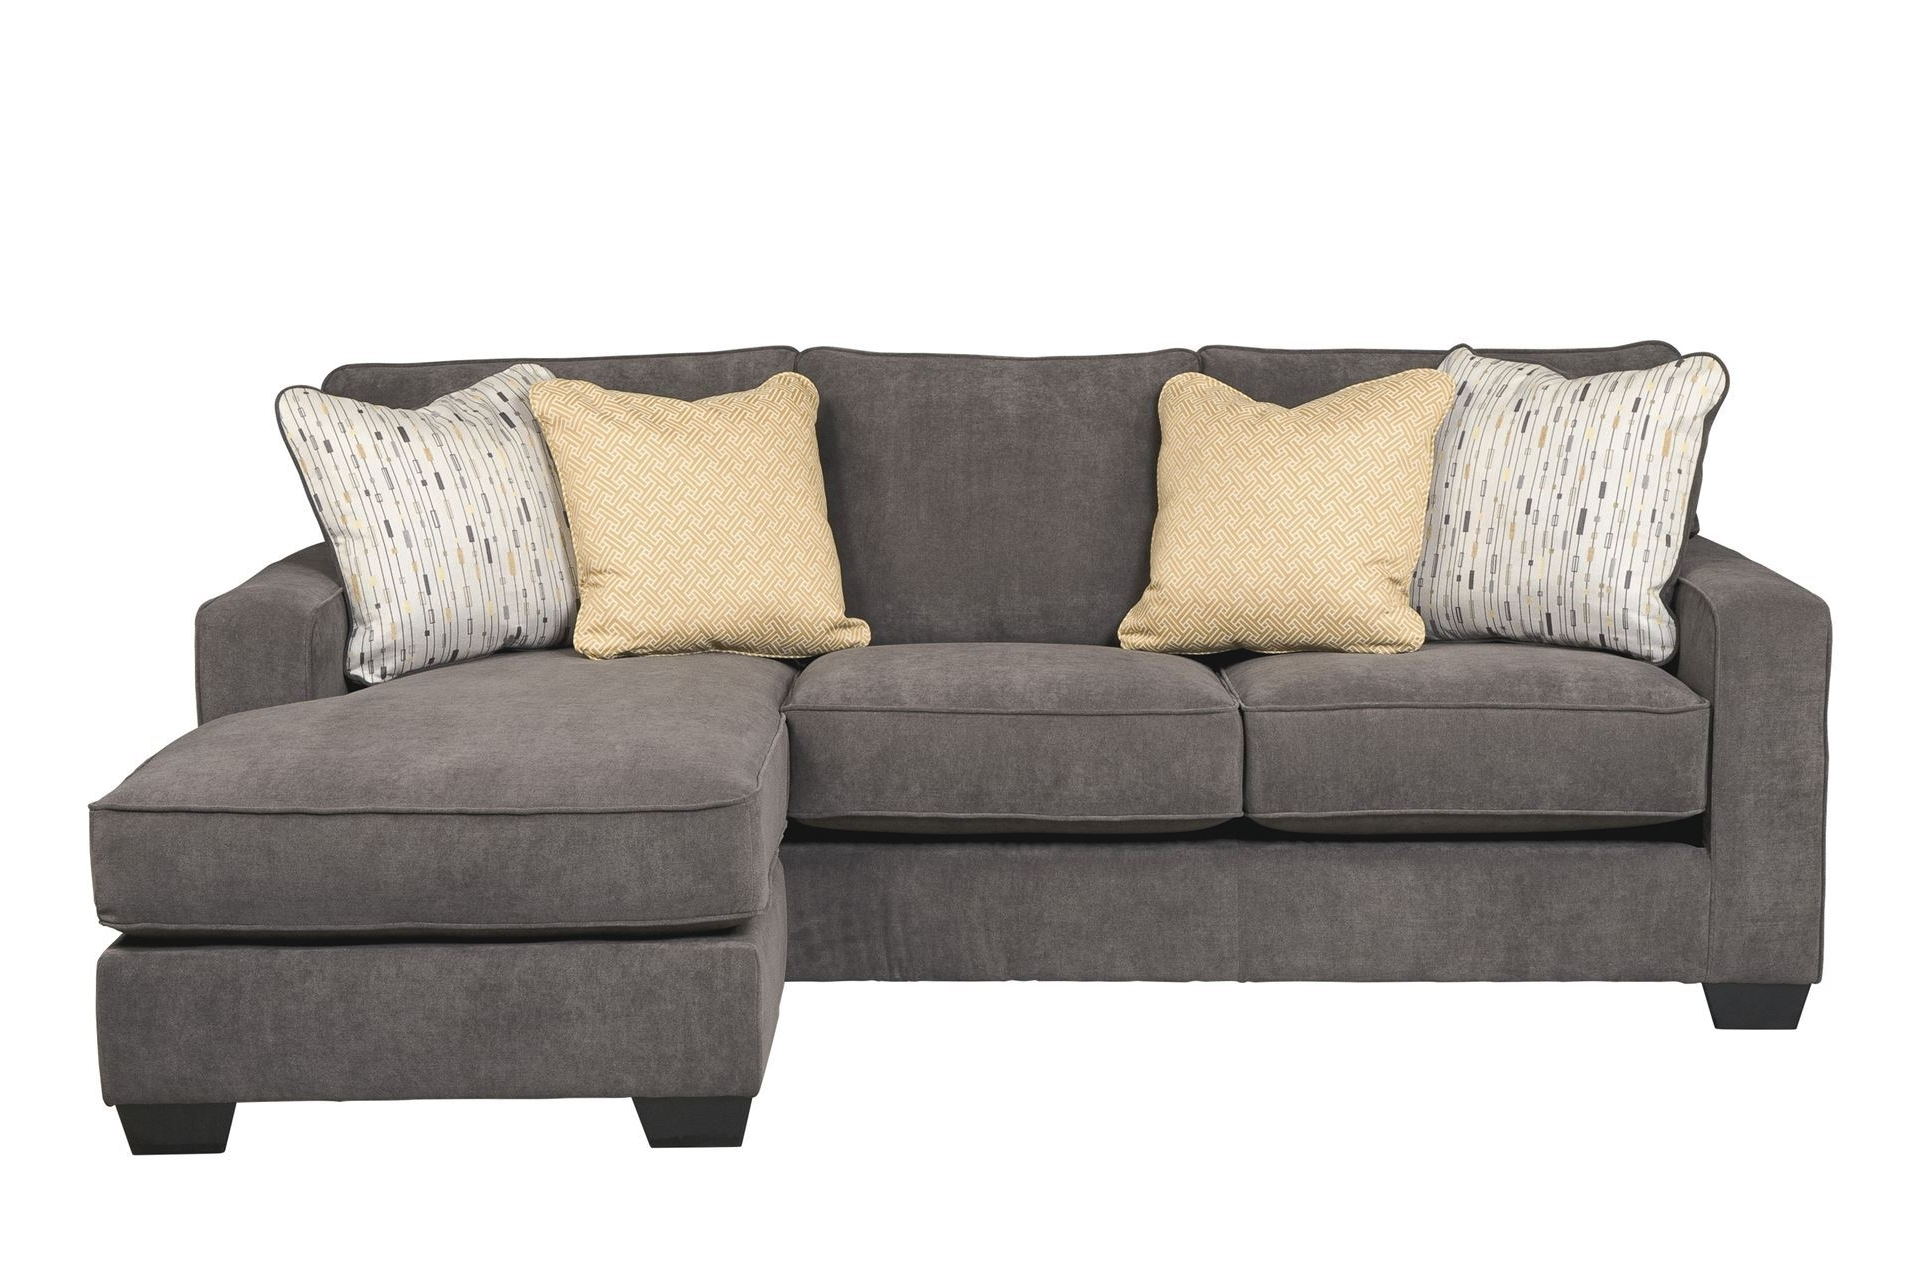 Gray Couches With Chaise Regarding Well Known Hodan Sofa/chaise (View 2 of 15)